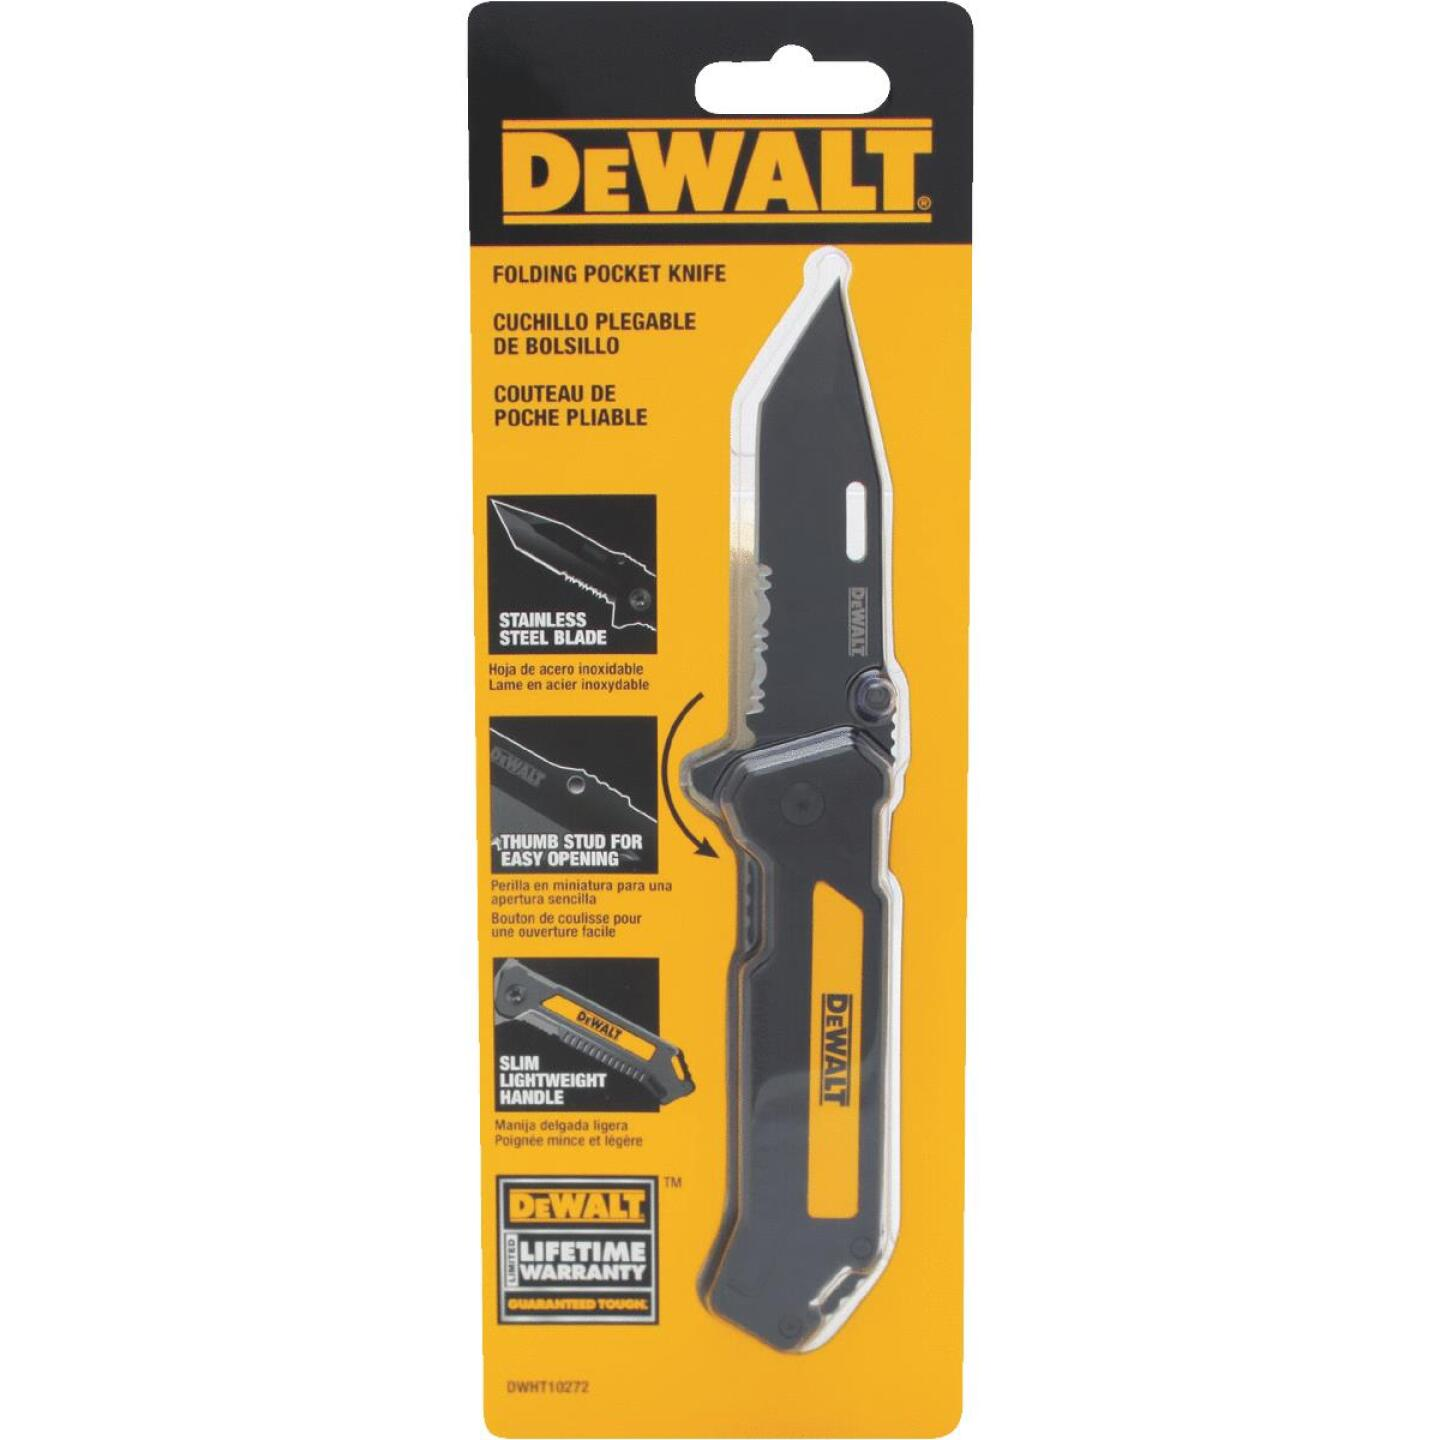 DeWalt 1-Blade 4-1/2 In. Folding Pocket Knife Image 2